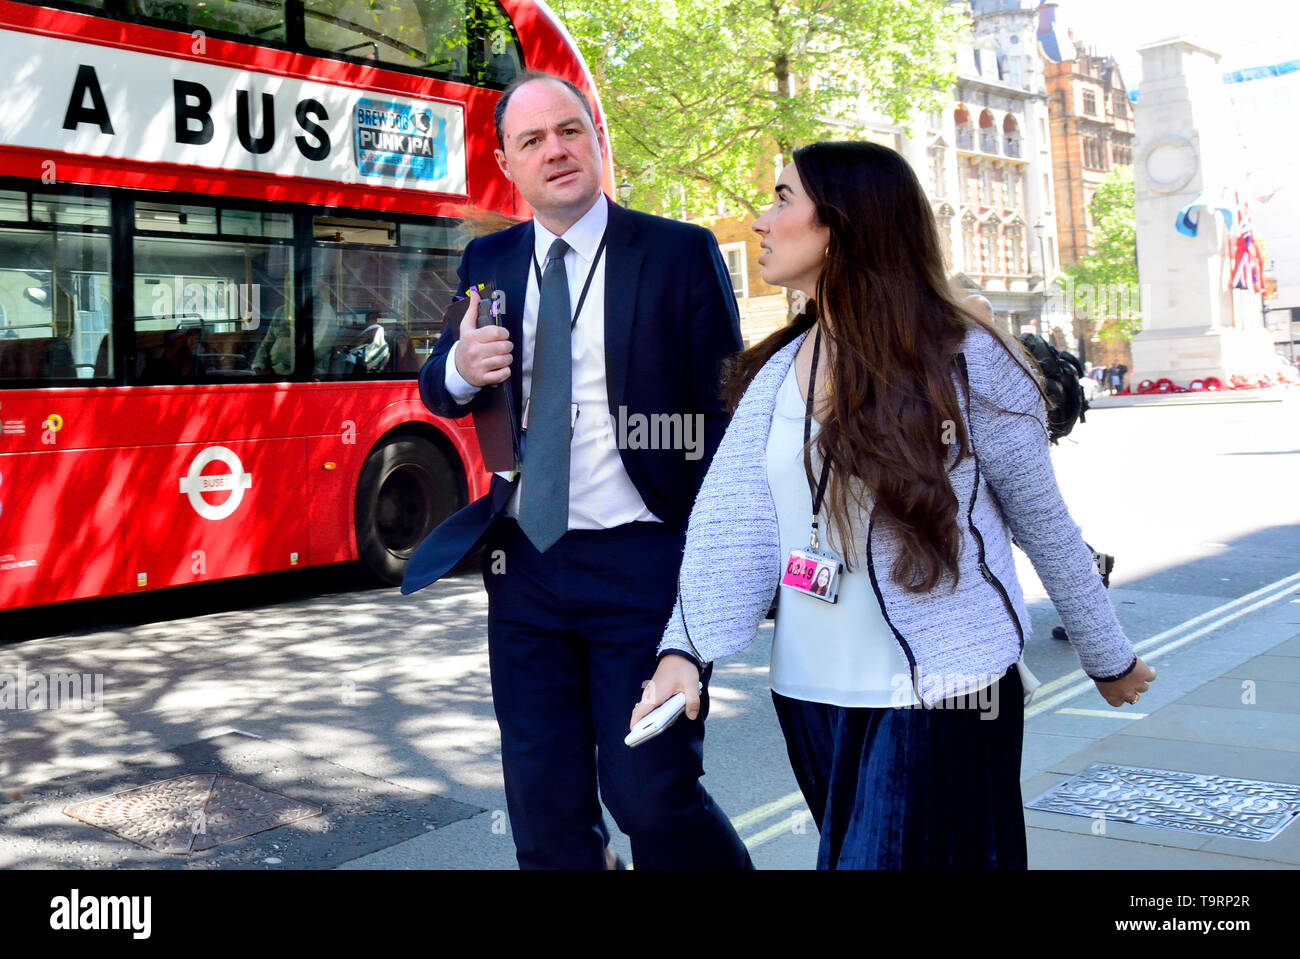 James Slack (official spokesman for 10 Downing Street) and Katie Smith (Senior Press Officer at Prime Minister's Office) in Whitehall, by a bus, May 2 Stock Photo